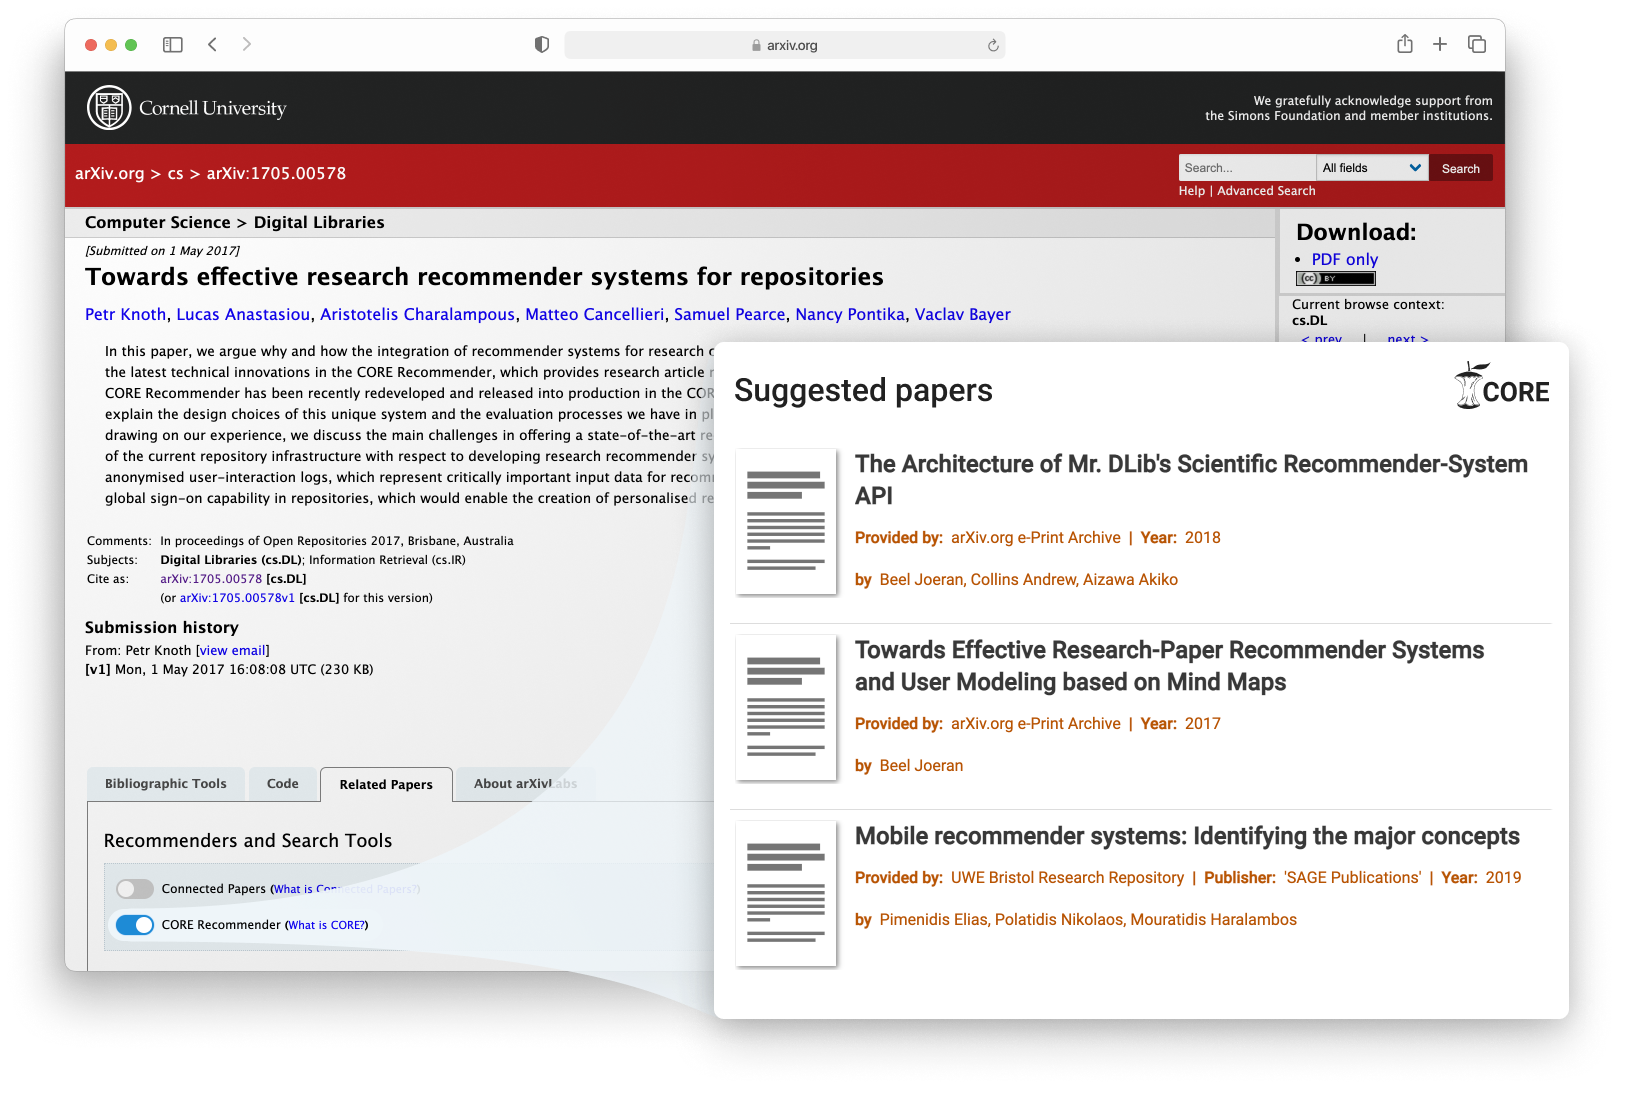 CORE Recommender on arXiv metadata page screenshot